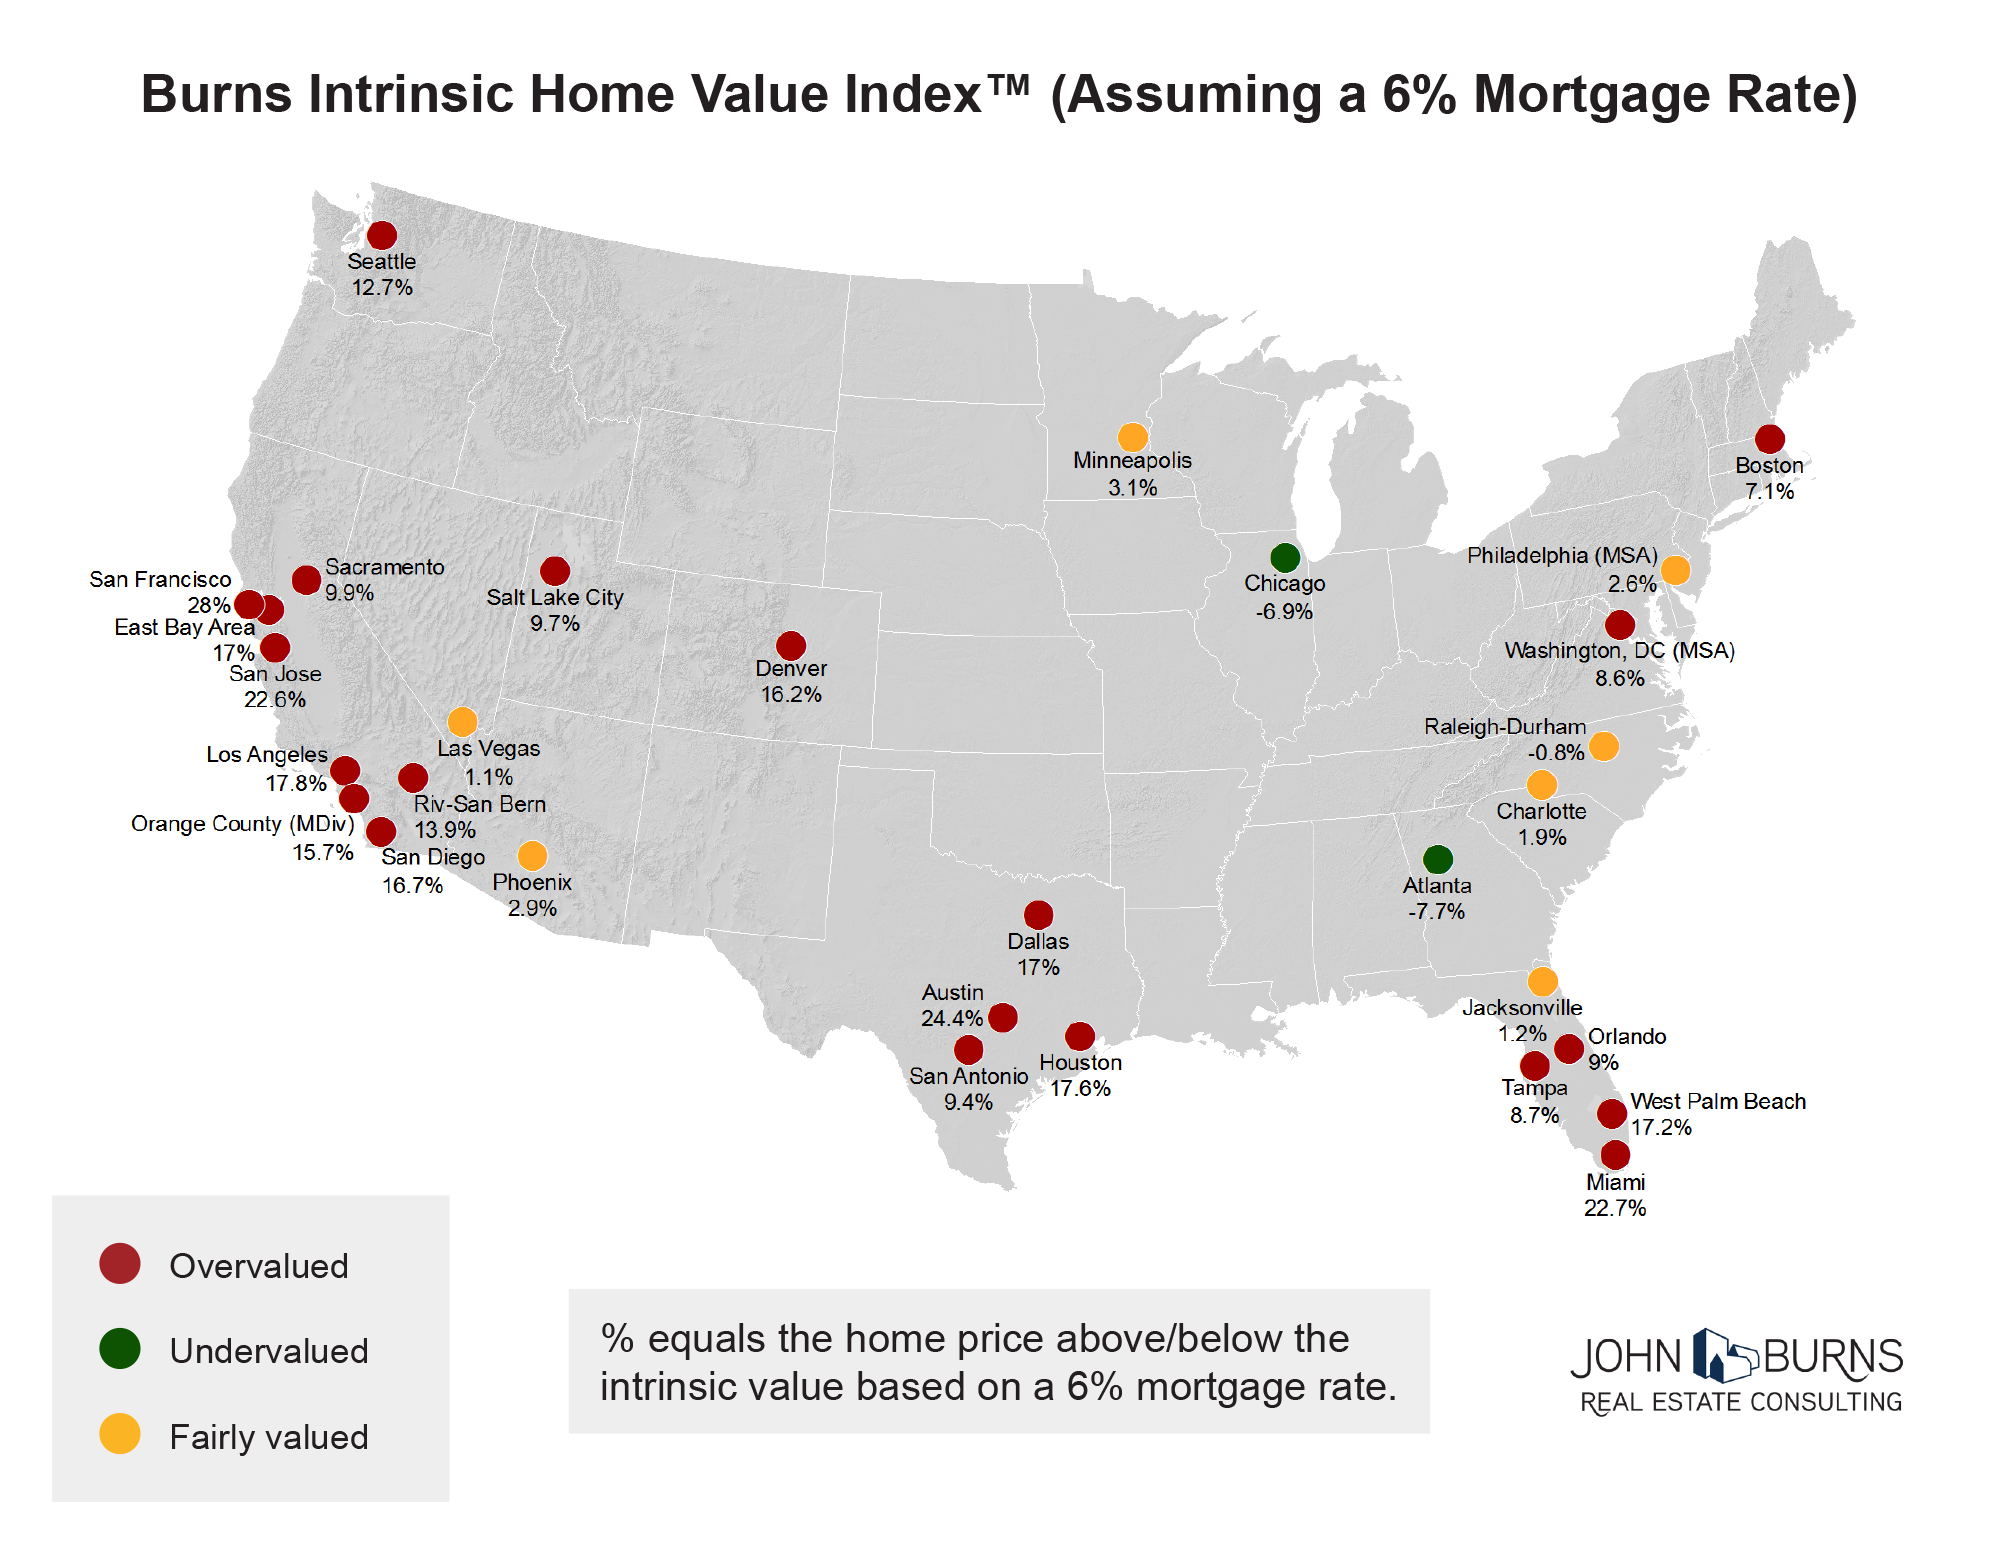 Intrinsic-Home-Values-Map-Sept2015.png